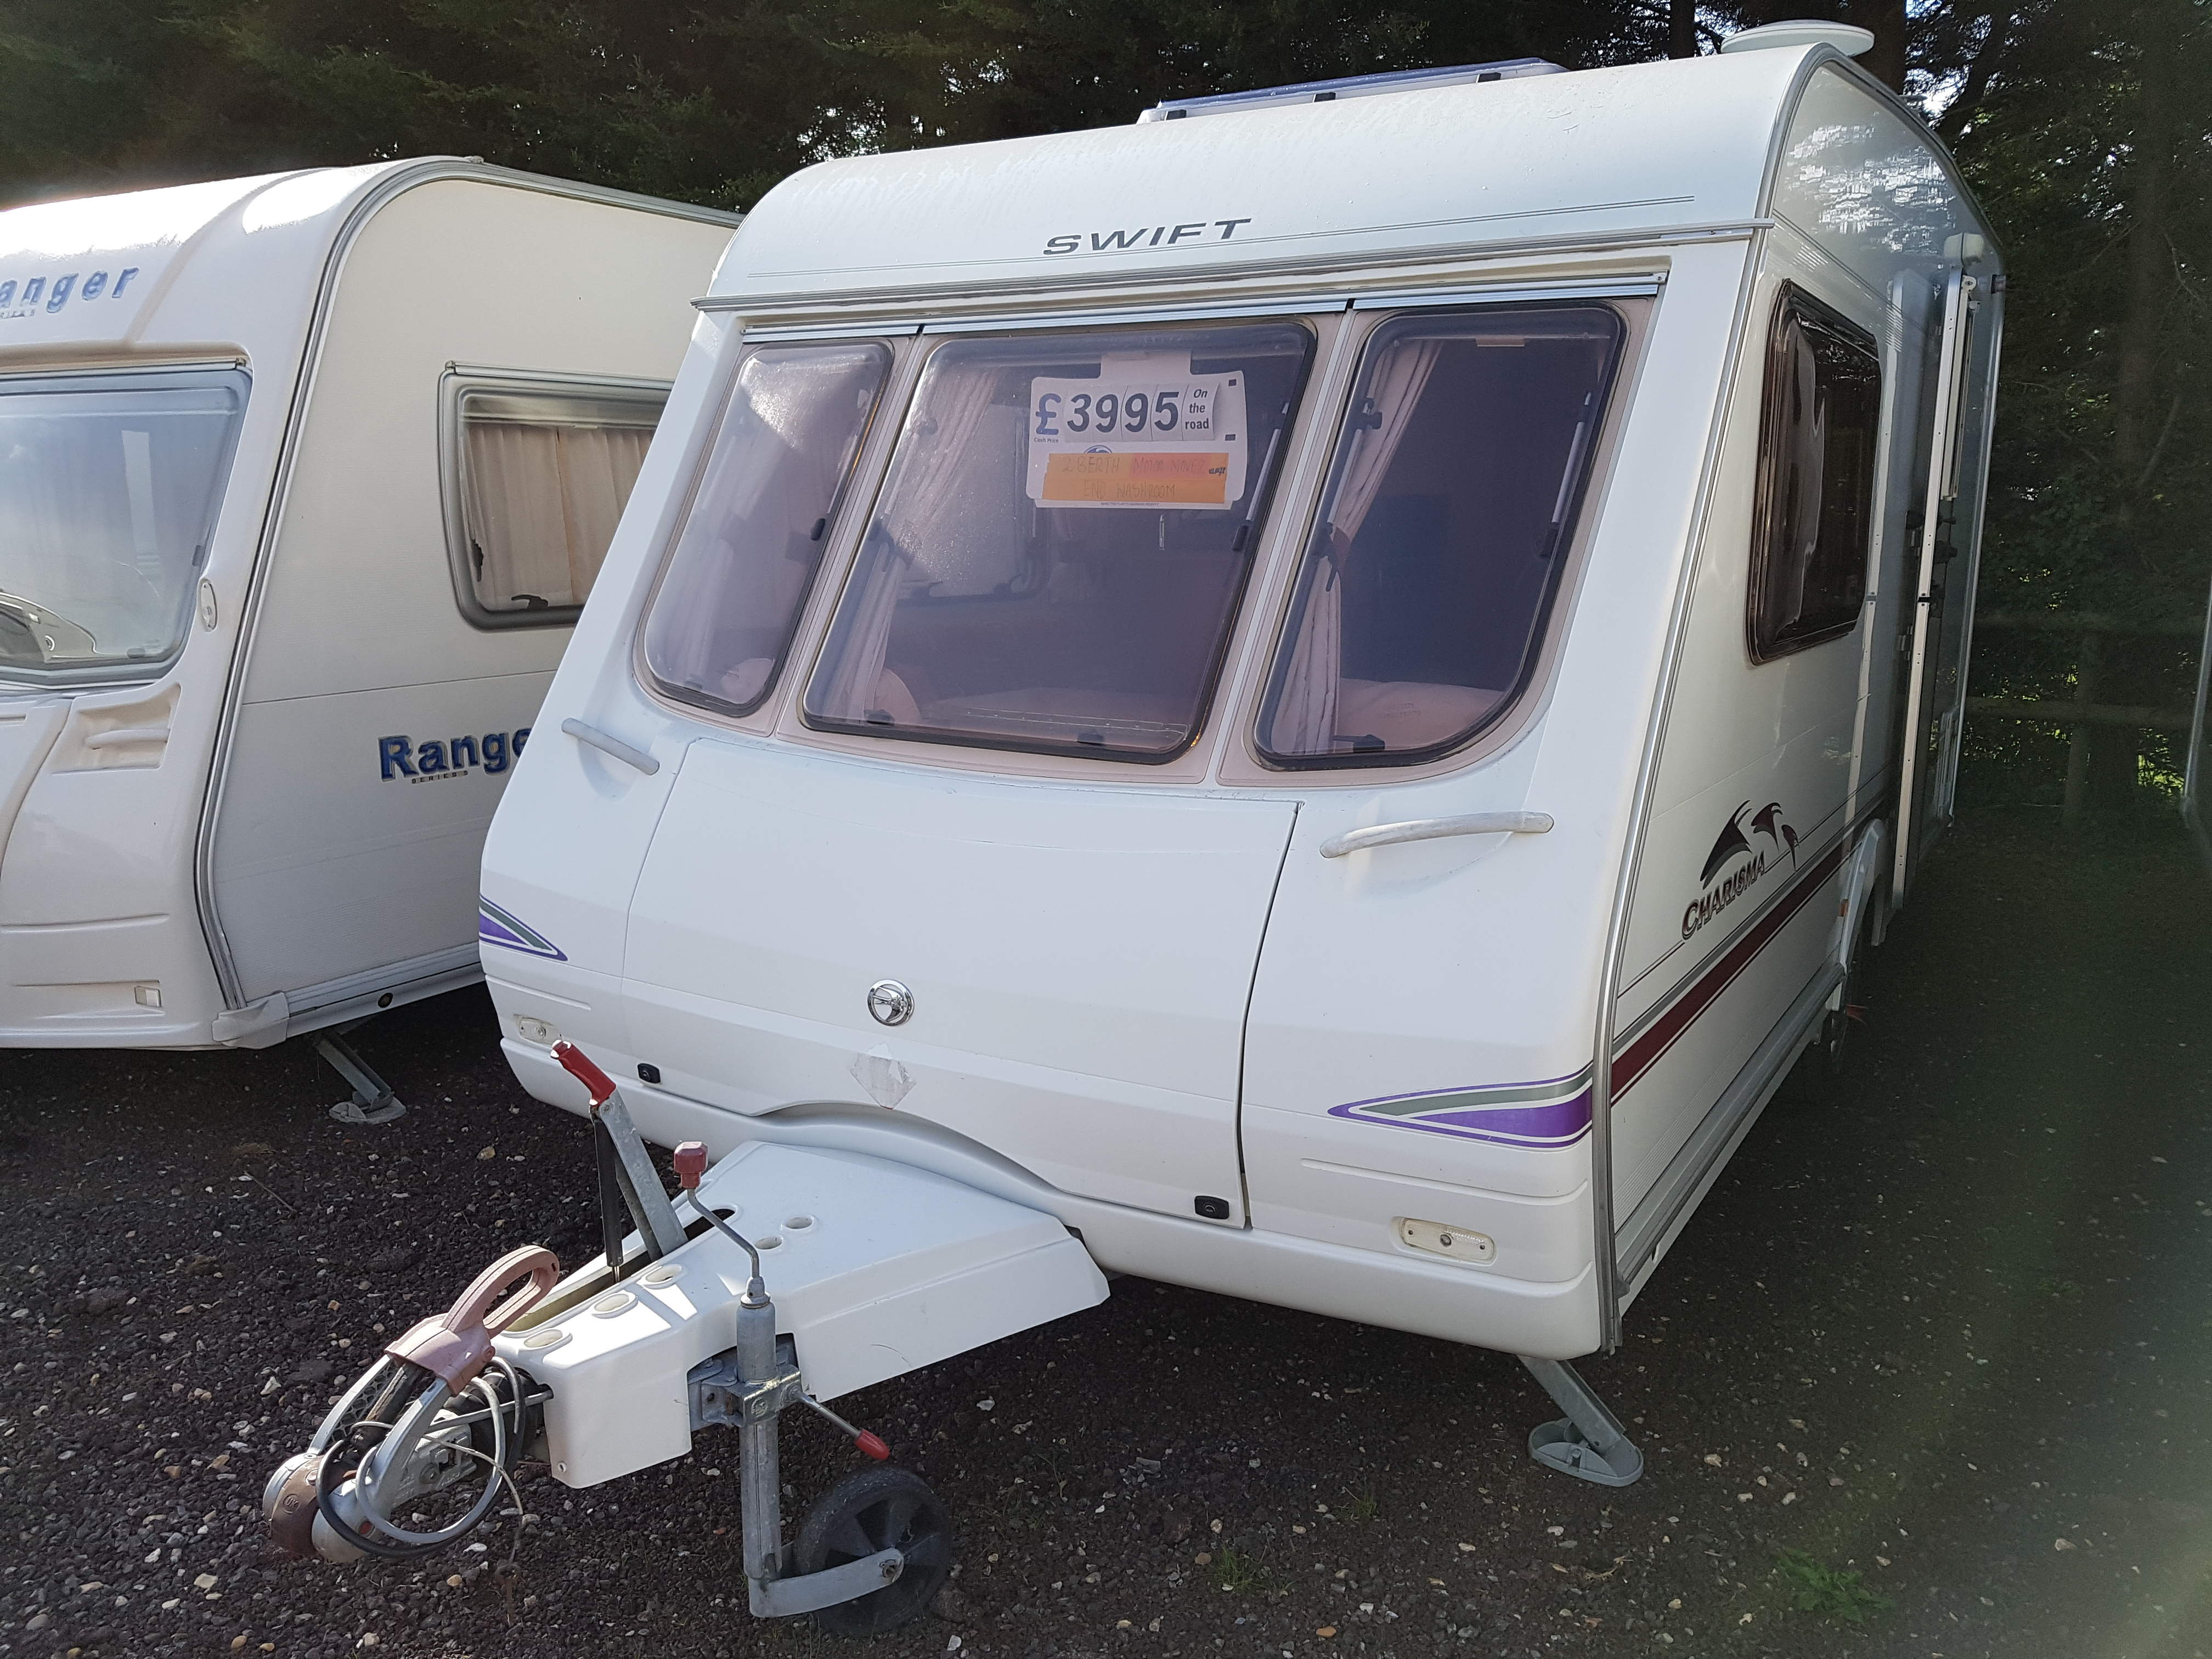 NOW SOLD 2004 Swift Charisma 230 2 Berth End Washroom Caravan with Motor Mover